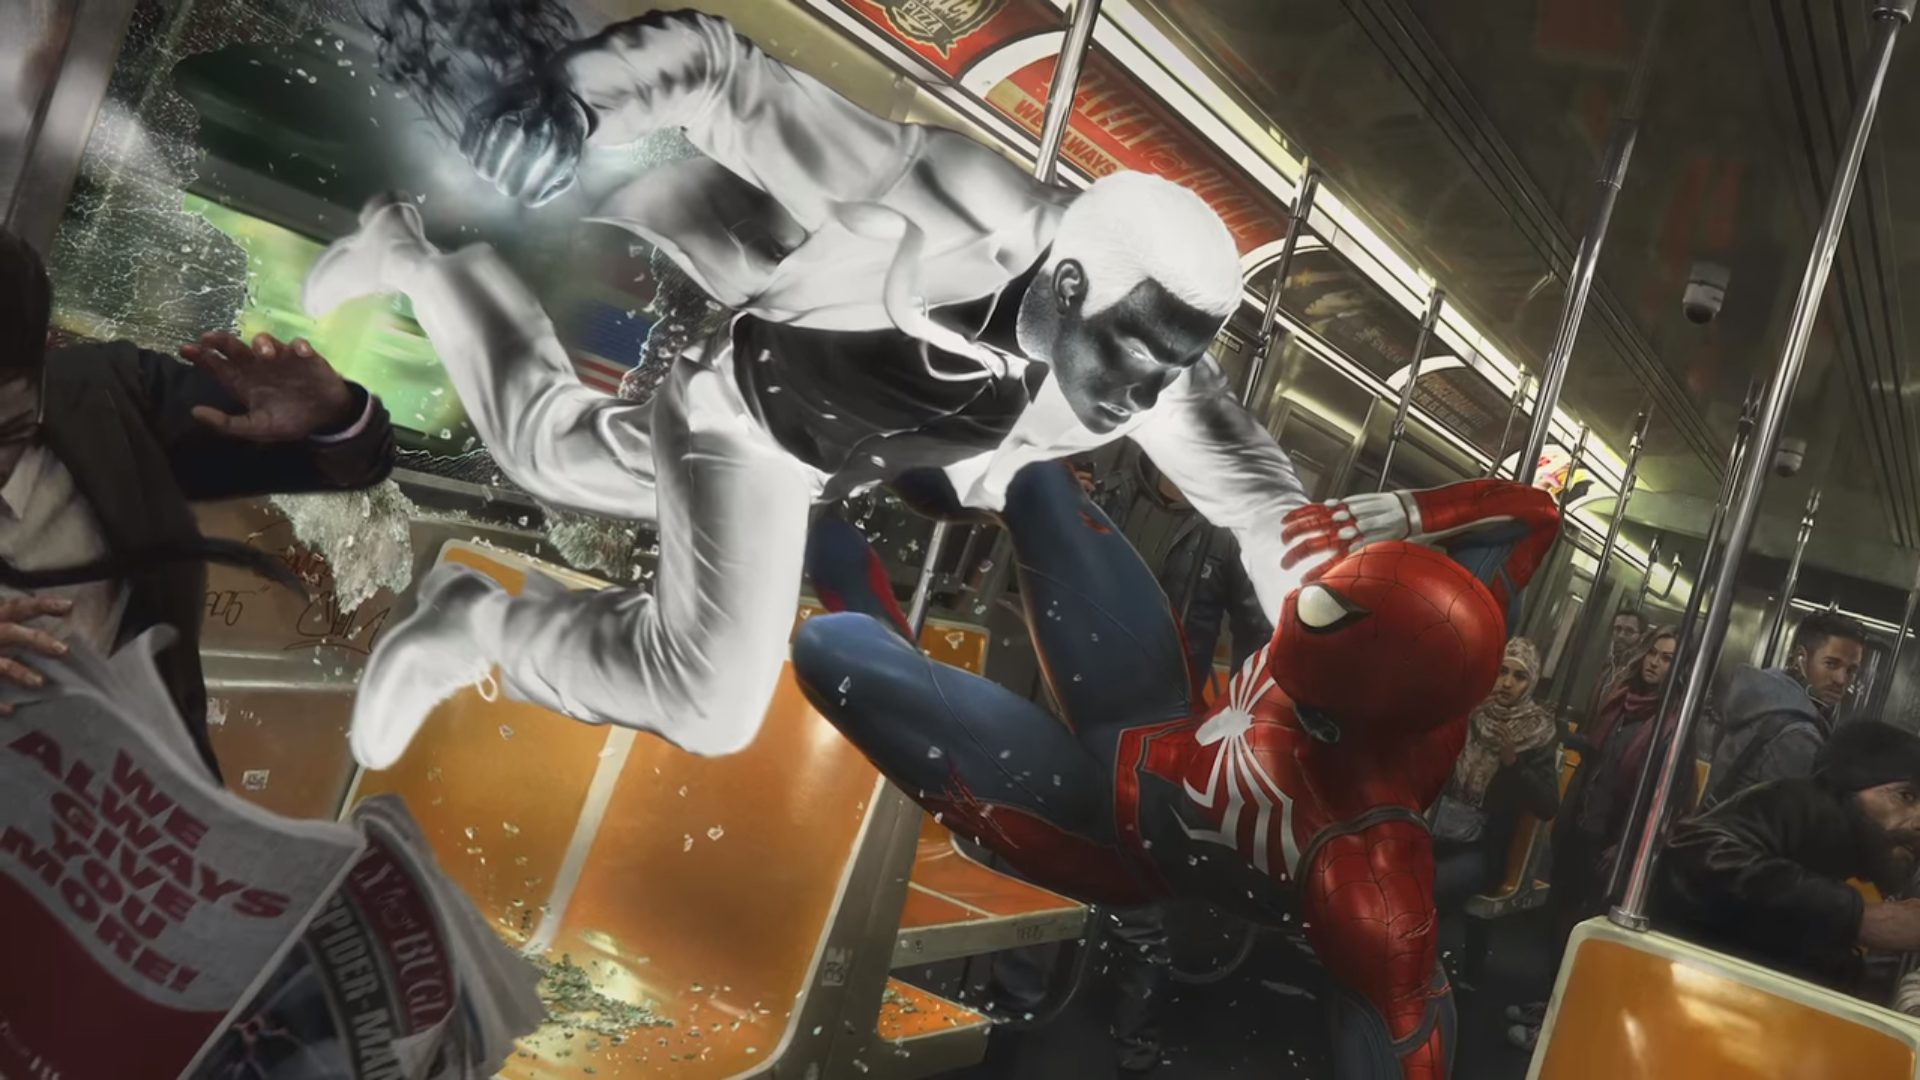 Spider-Man PS4 game video goes behind-the-scenes - PlayStation ...    Spiderman, Marvel spiderman, Spider man ps4 game